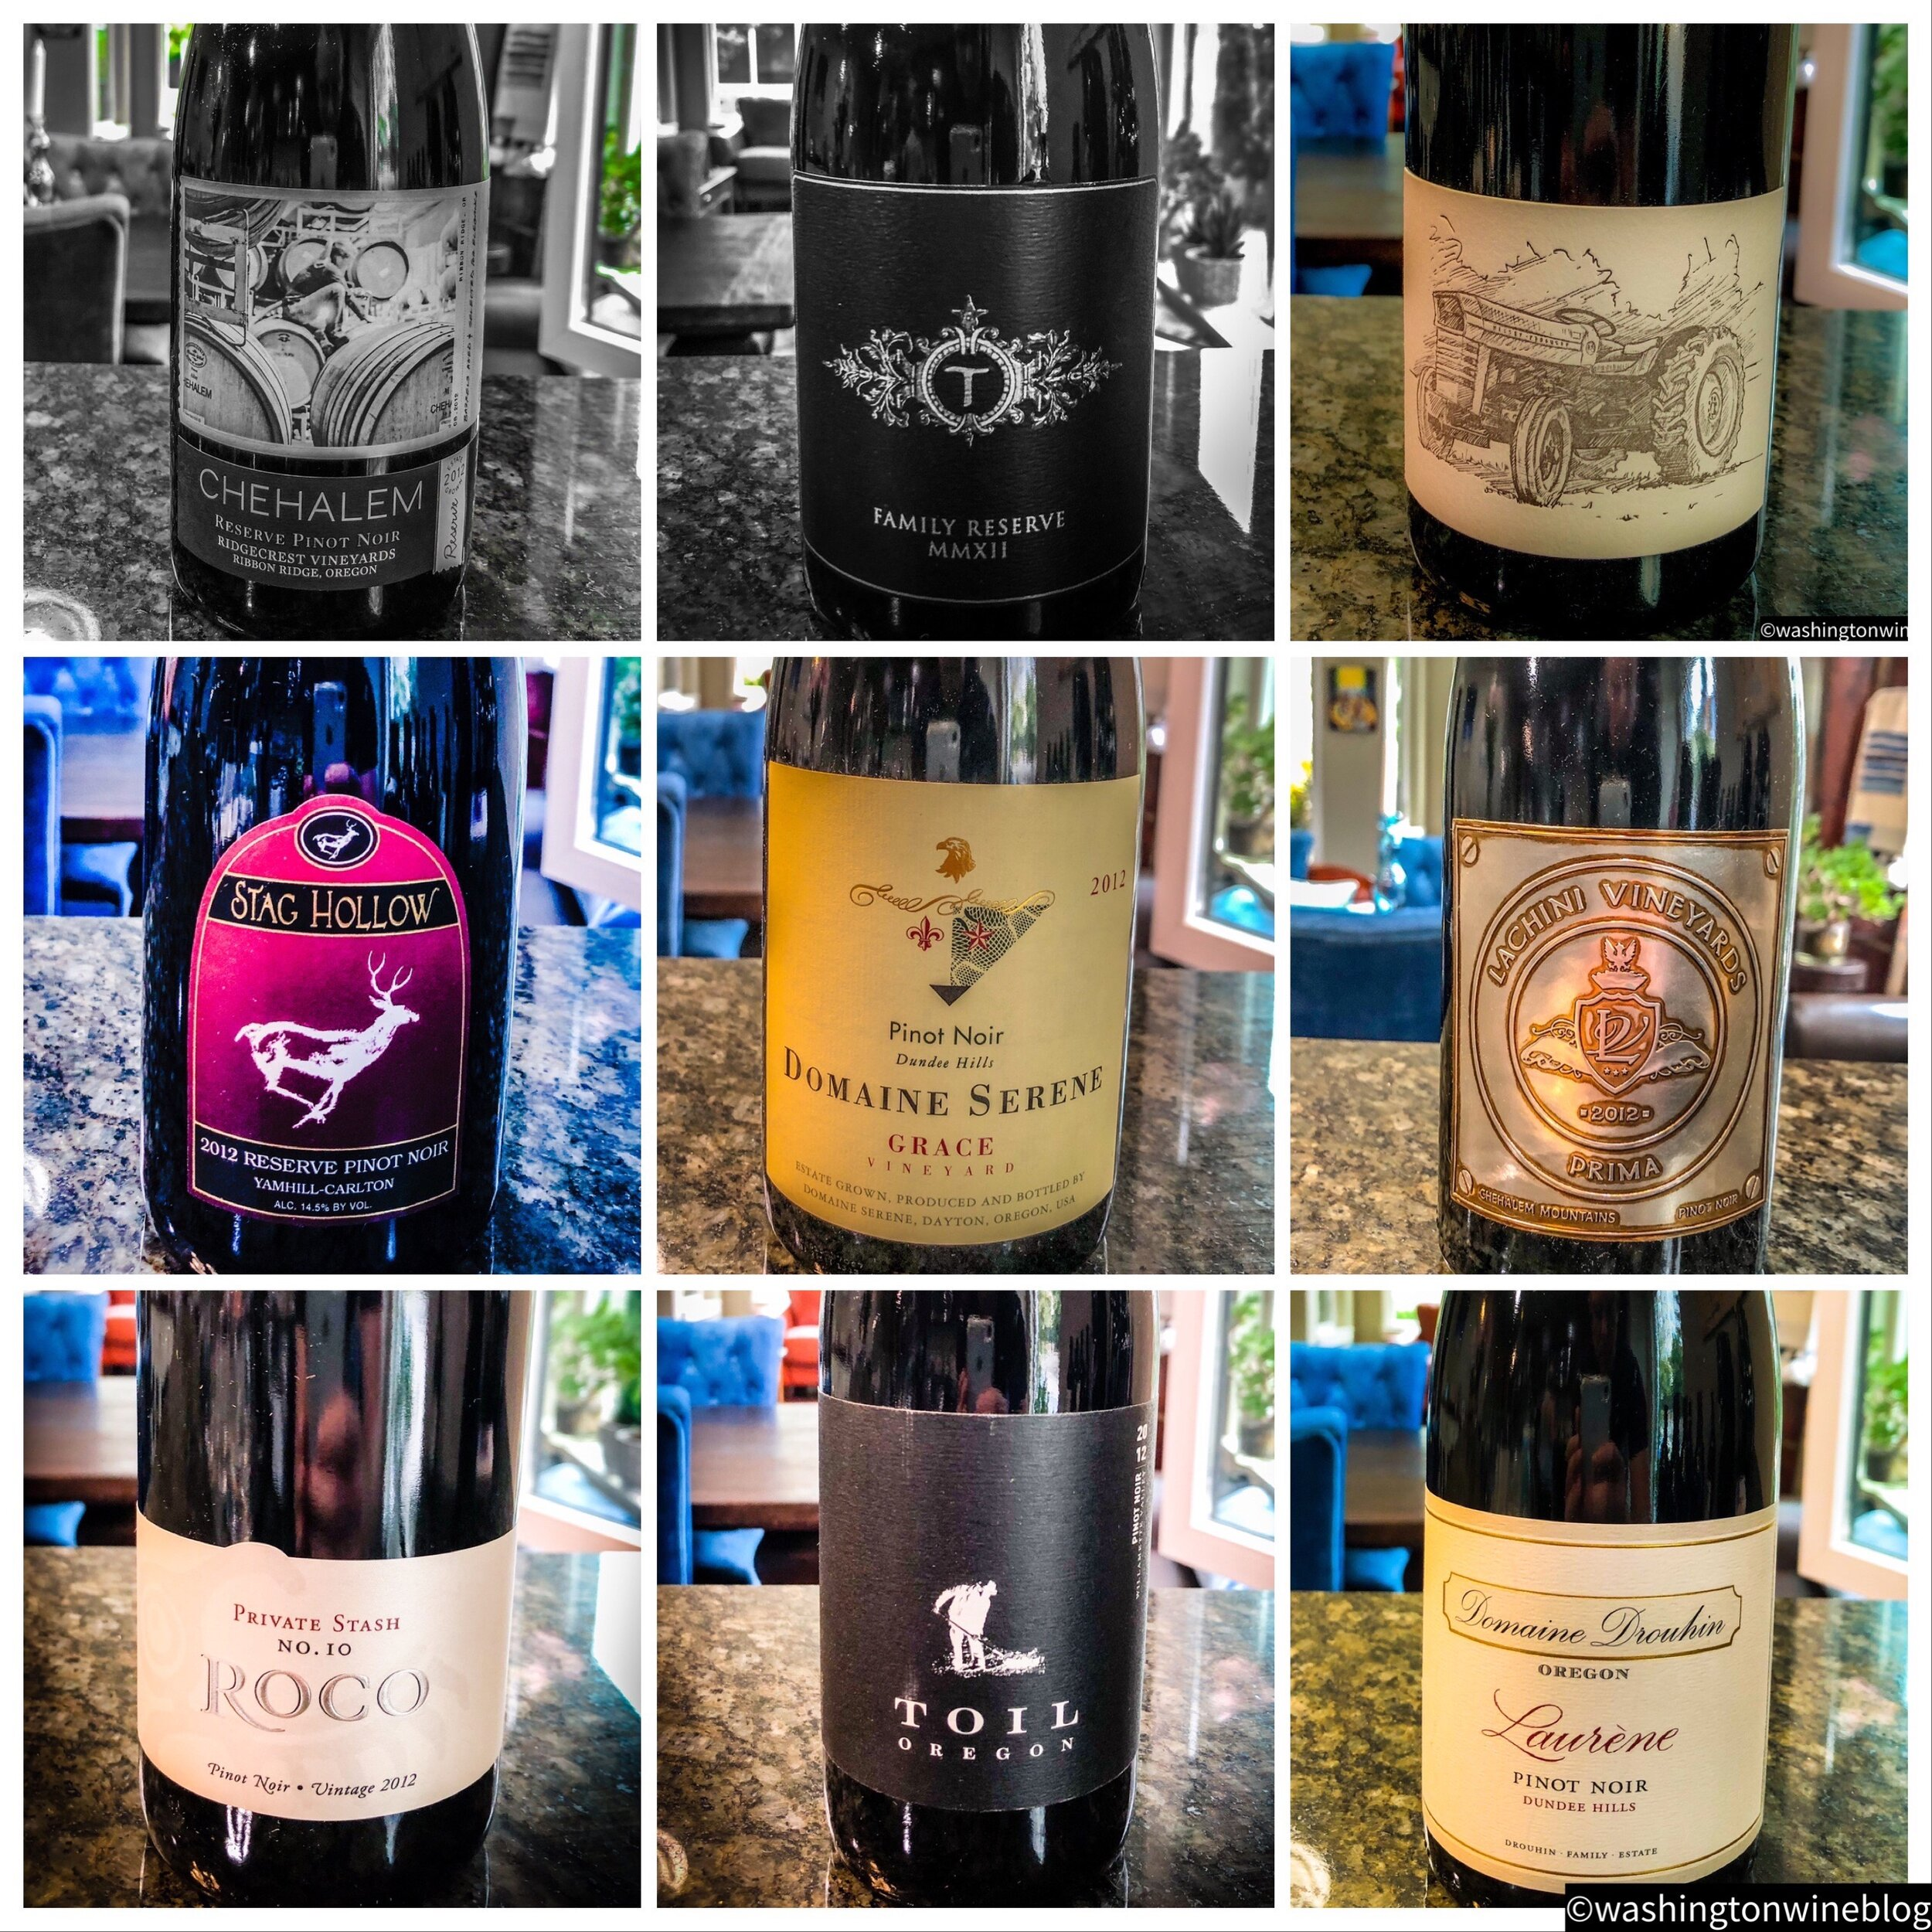 Here are some of the top Oregon Pinot Noirs from the thrilling 2012 vintage.